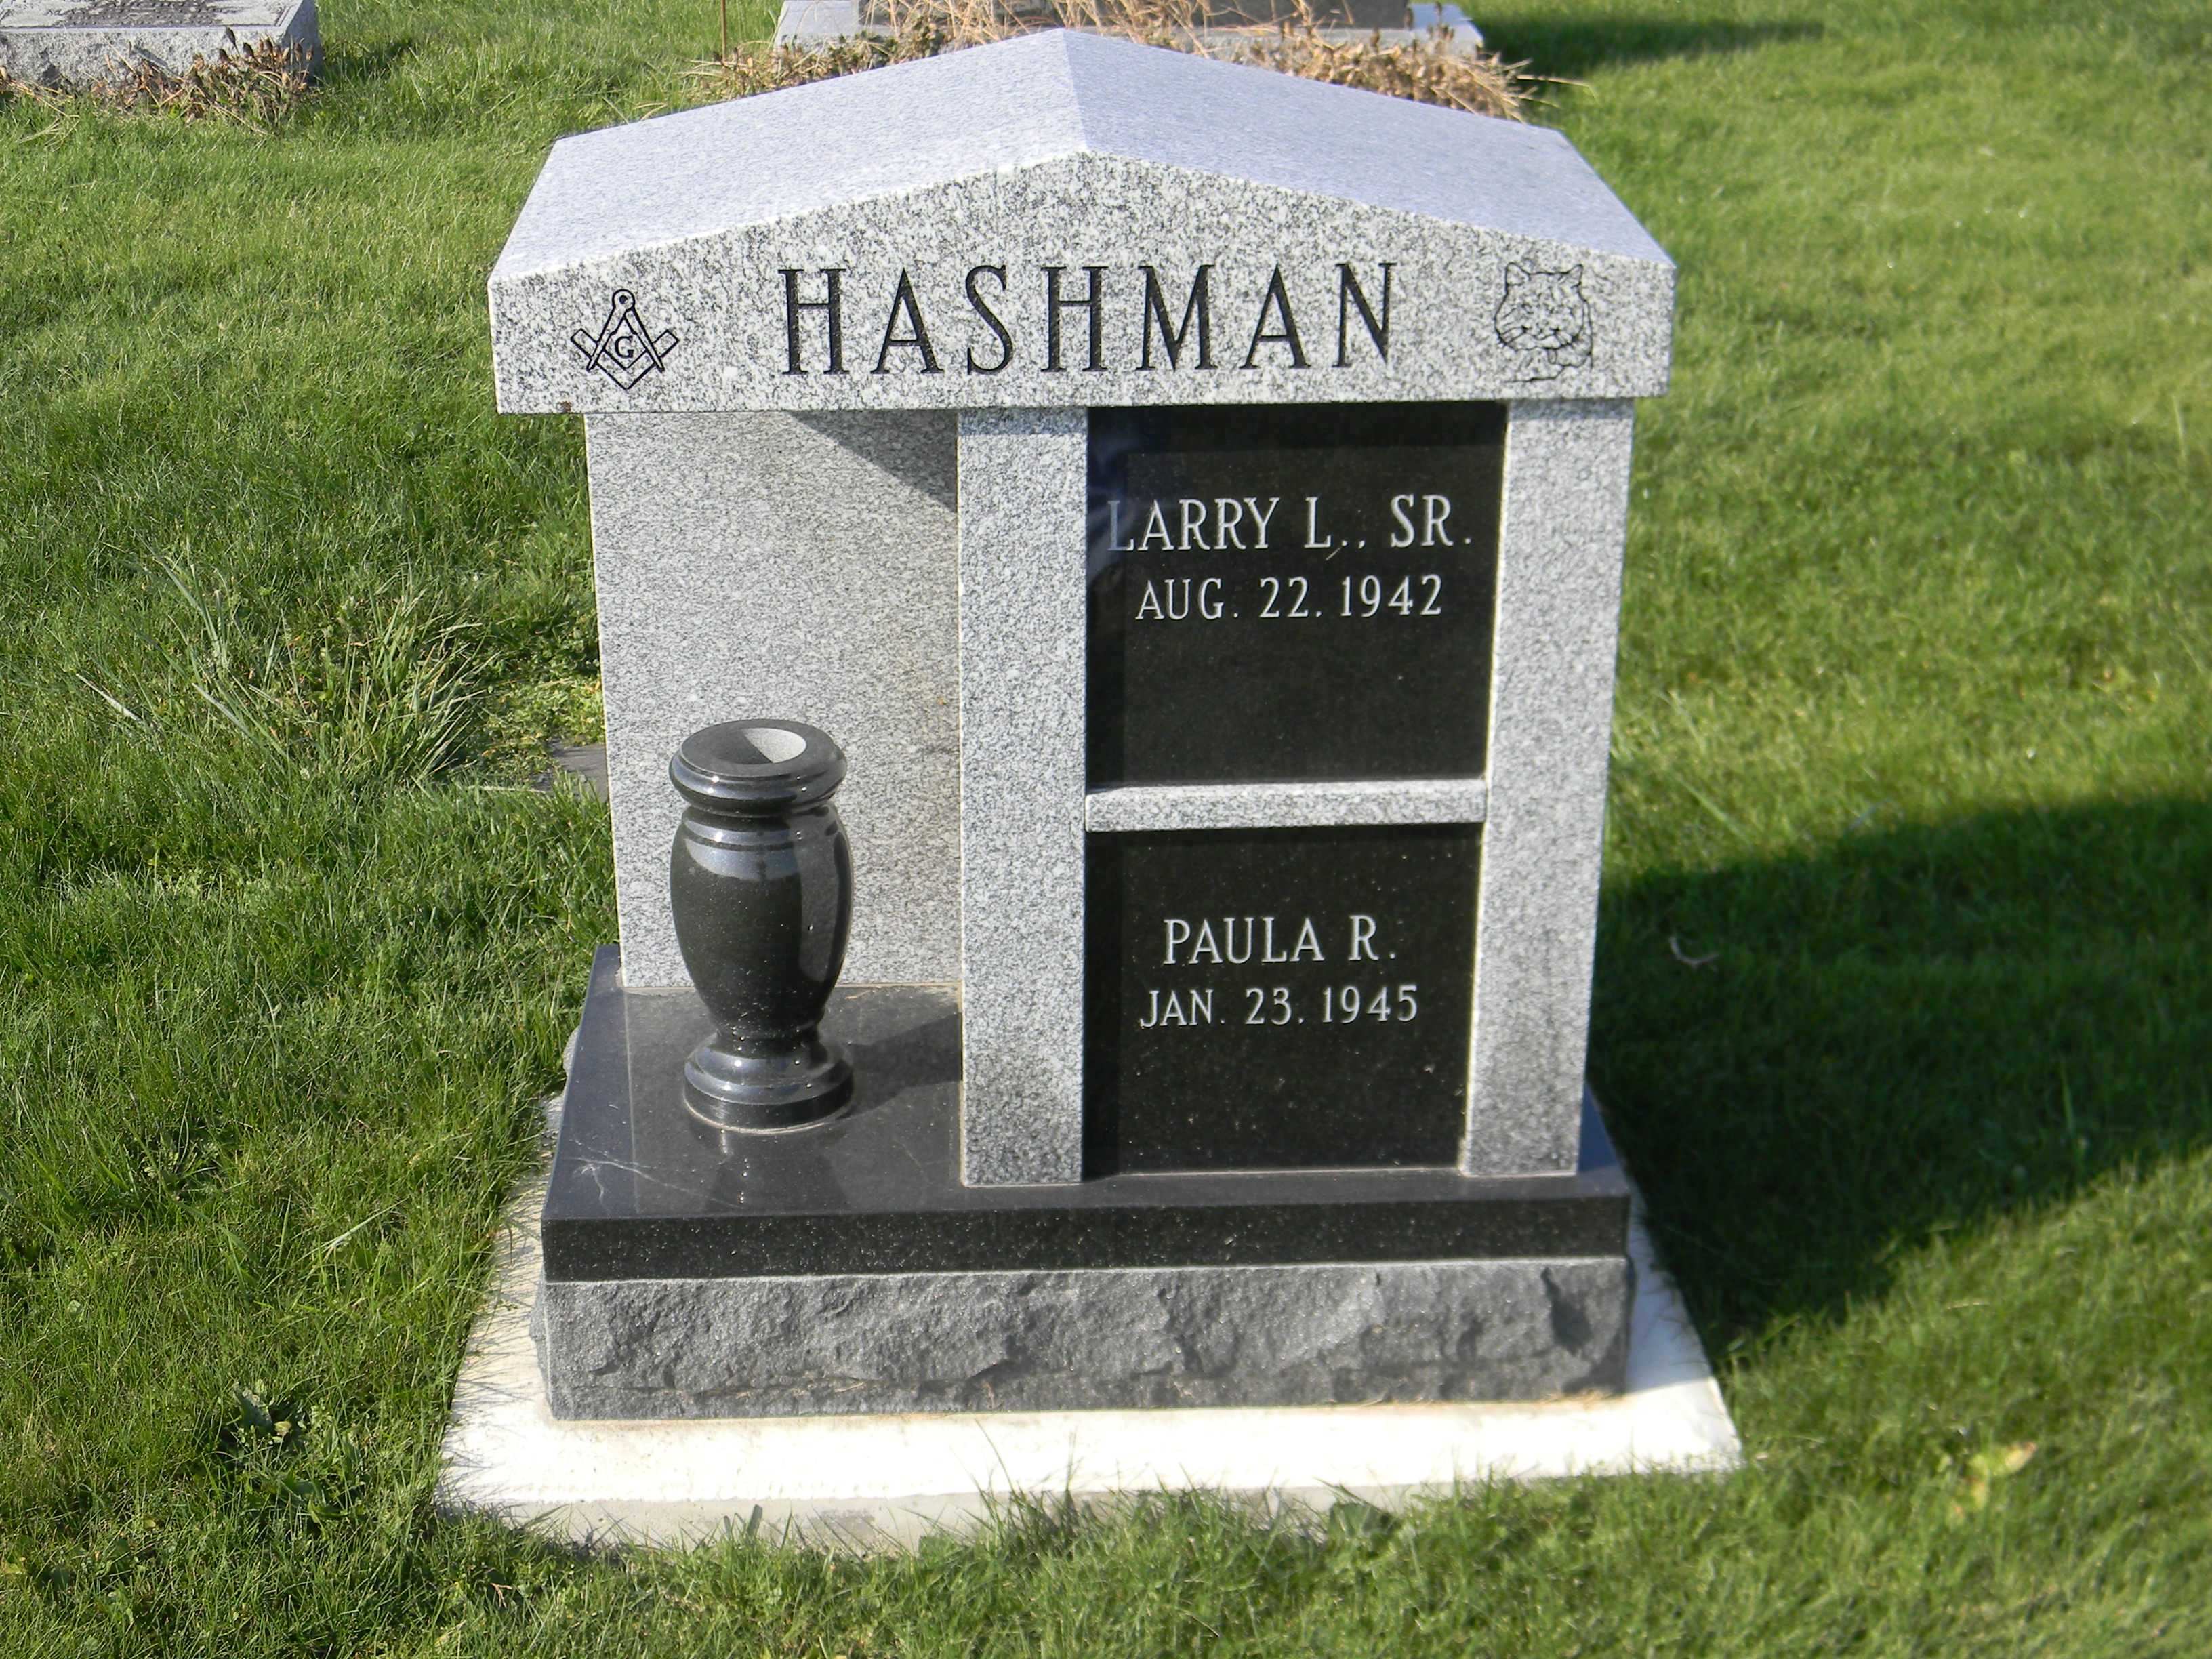 flower vases for gravestones with Creamation Urn Memorials on panions furthermore Heart Shaped Memorial Angel besides Angel Standing With Flowers likewise Double Heart Memorial in addition Graveside Flower Vases.